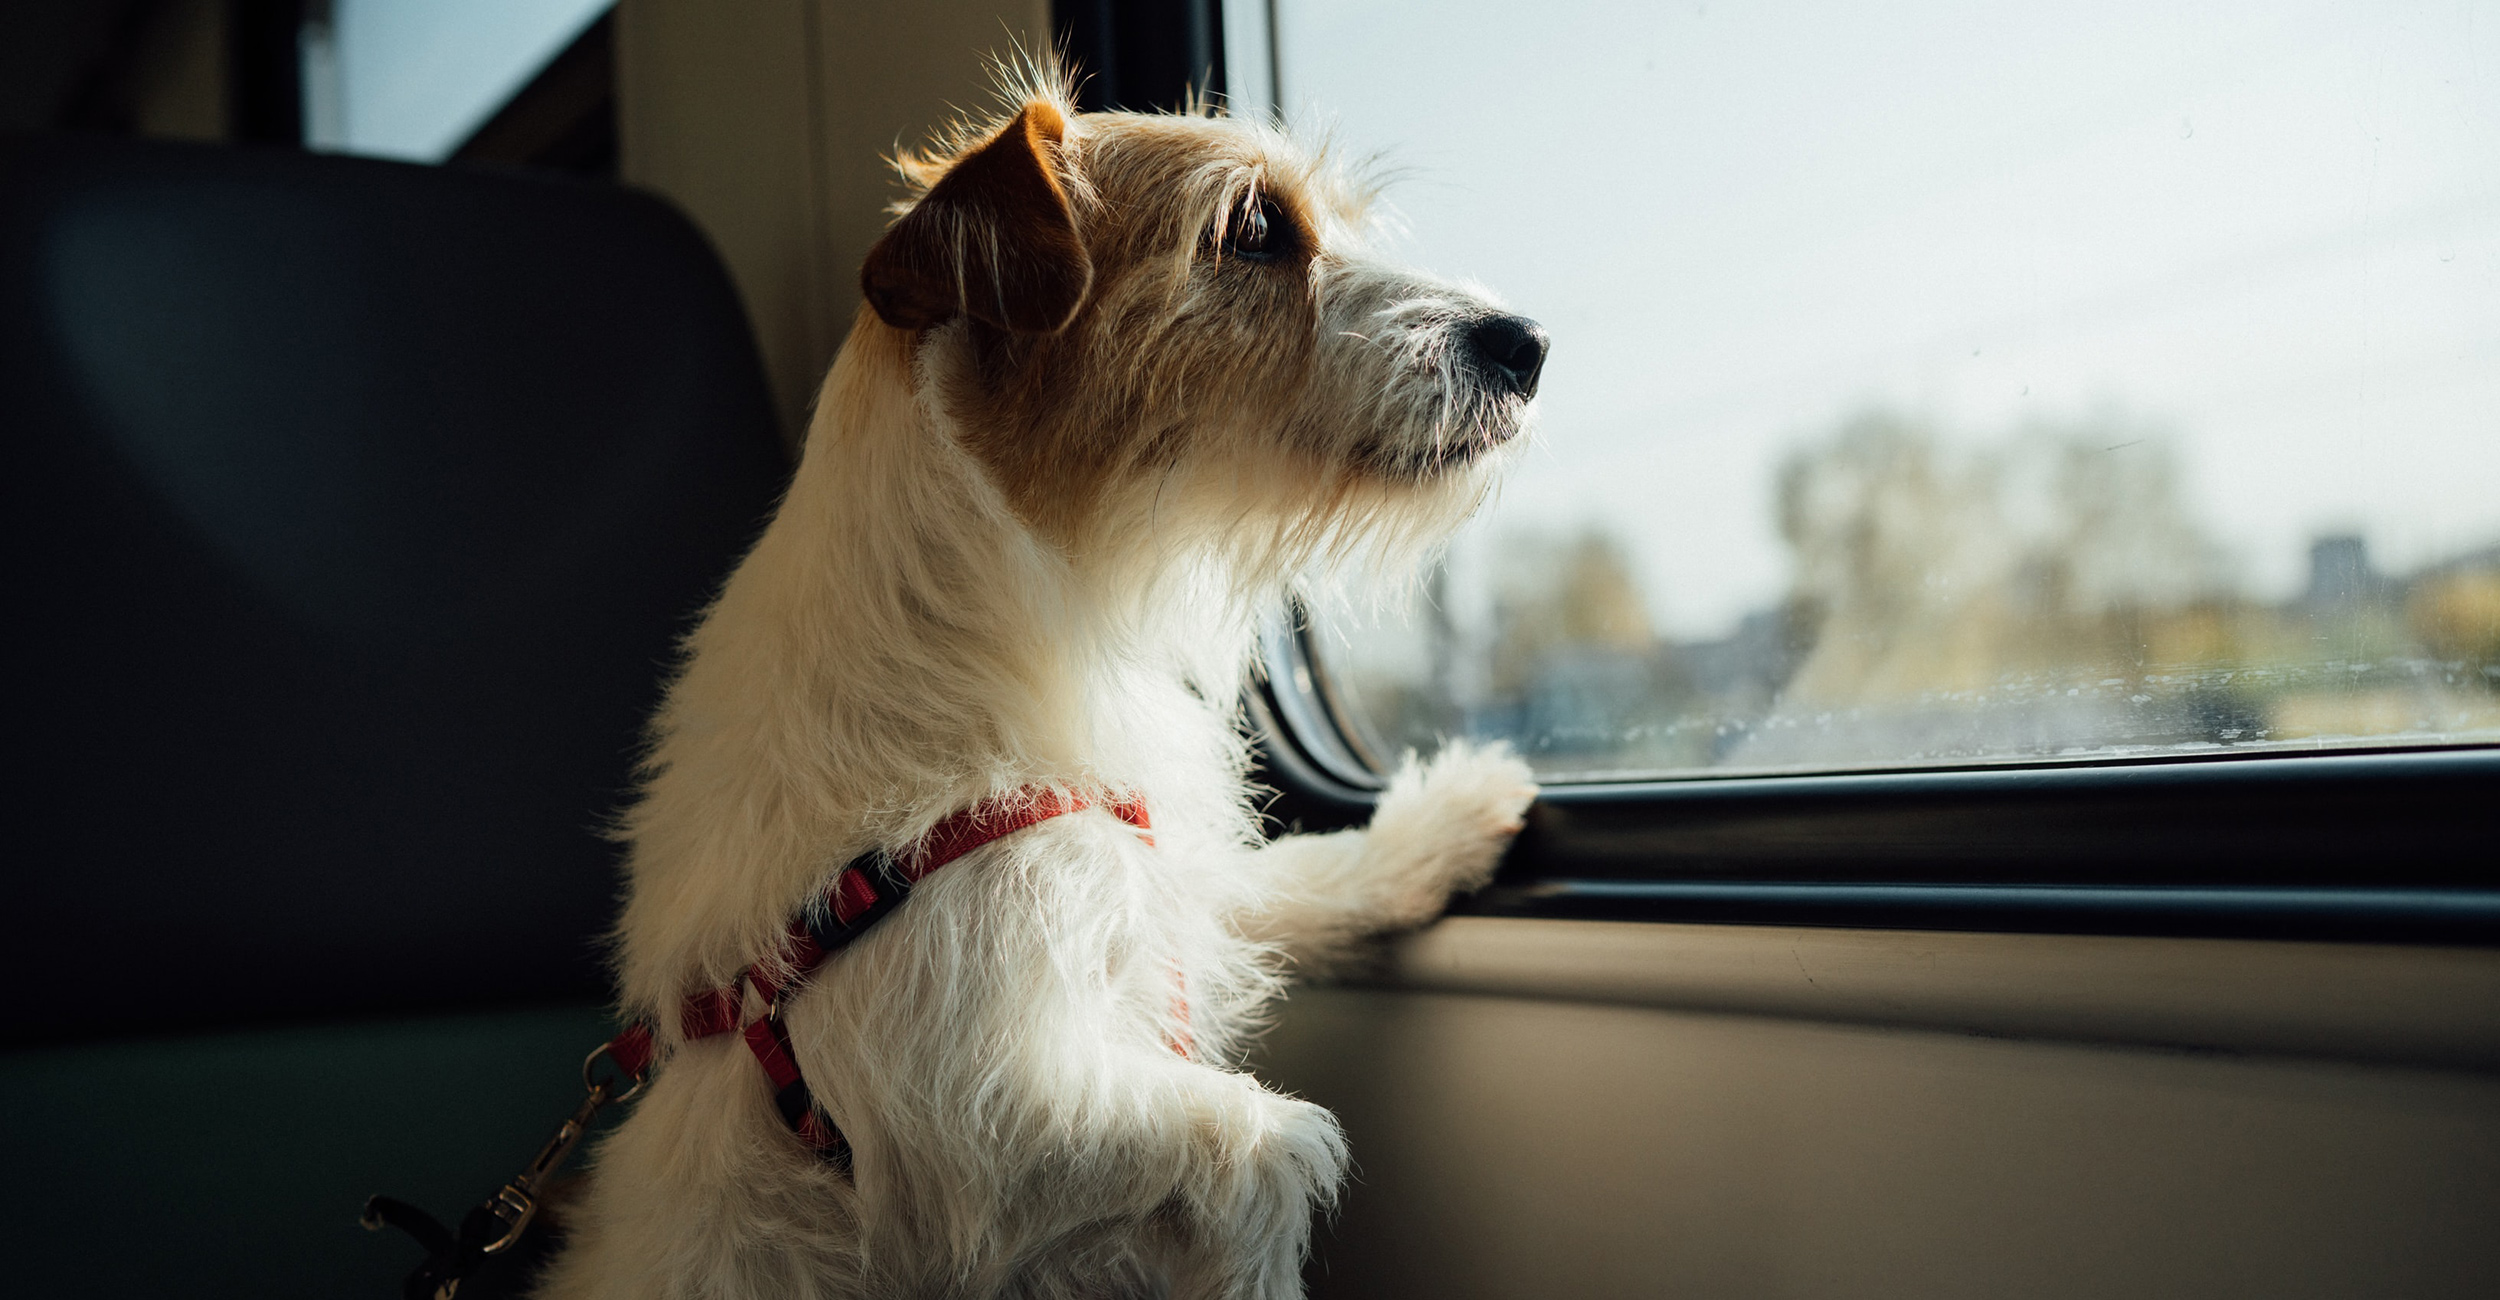 Picture of dog looking out car window.